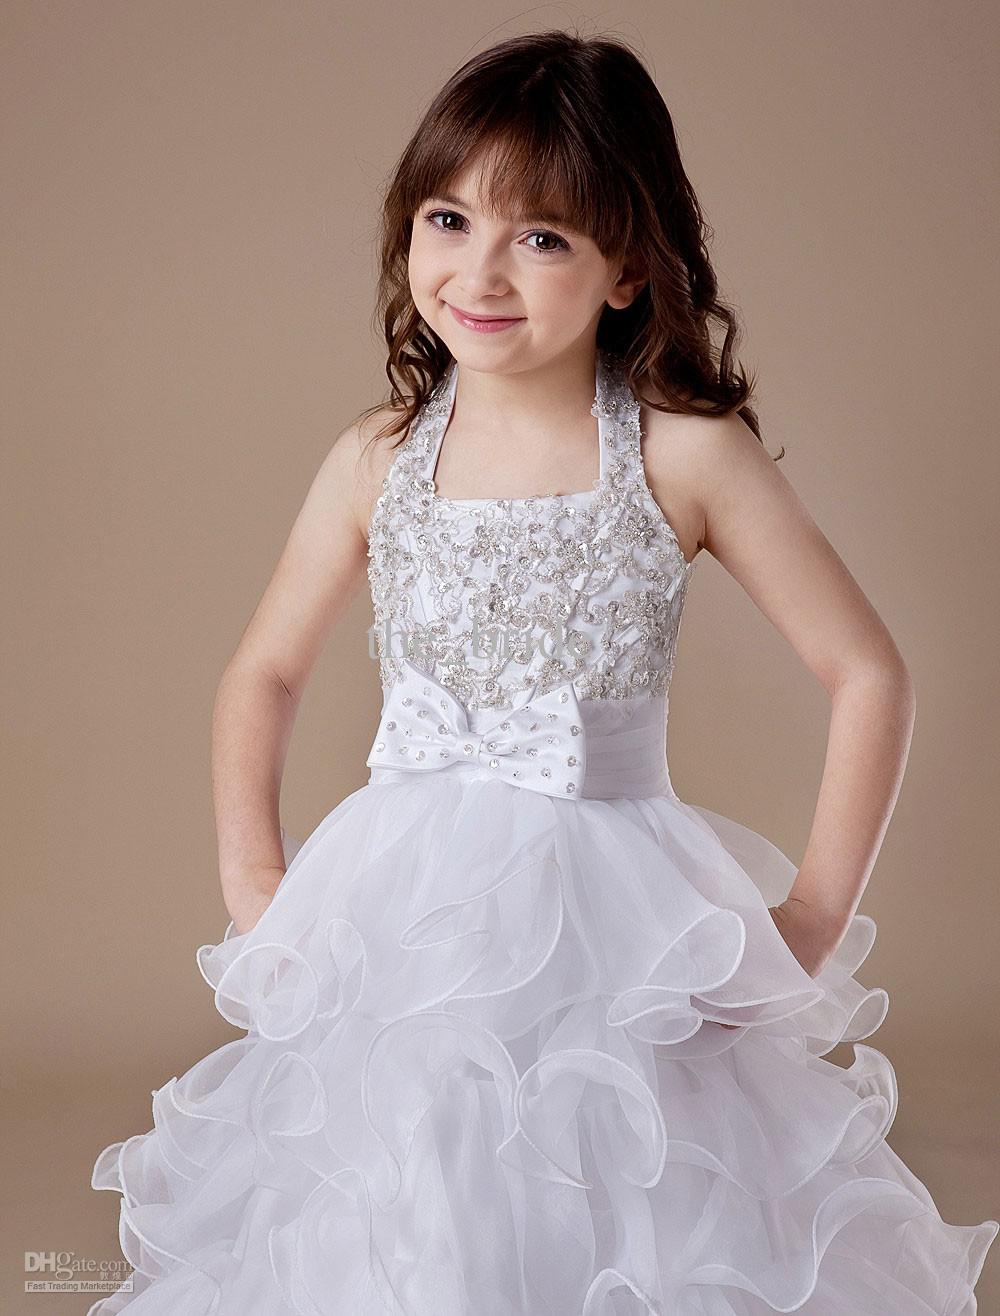 Beautiful wedding dresses for girls sang maestro for Wedding dresses for young girls